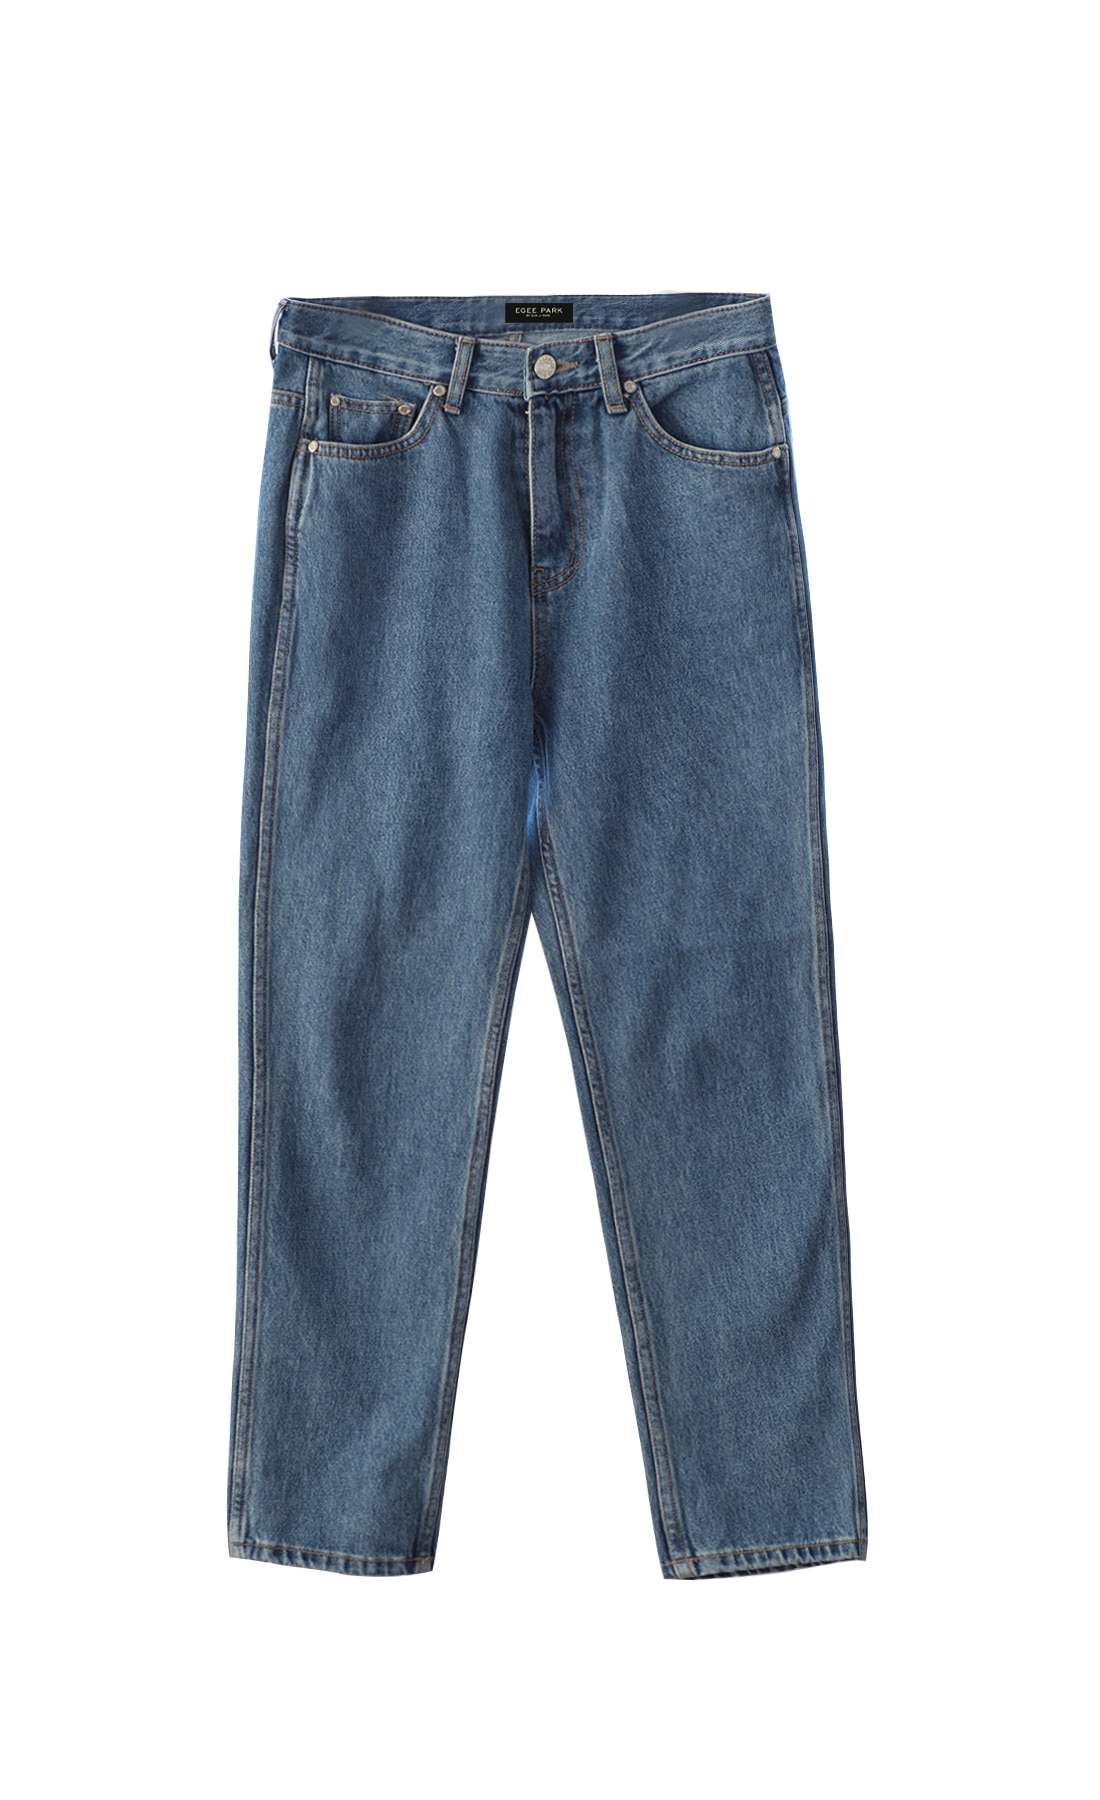 EG BOY JEANS (MEDIUM BLUE)